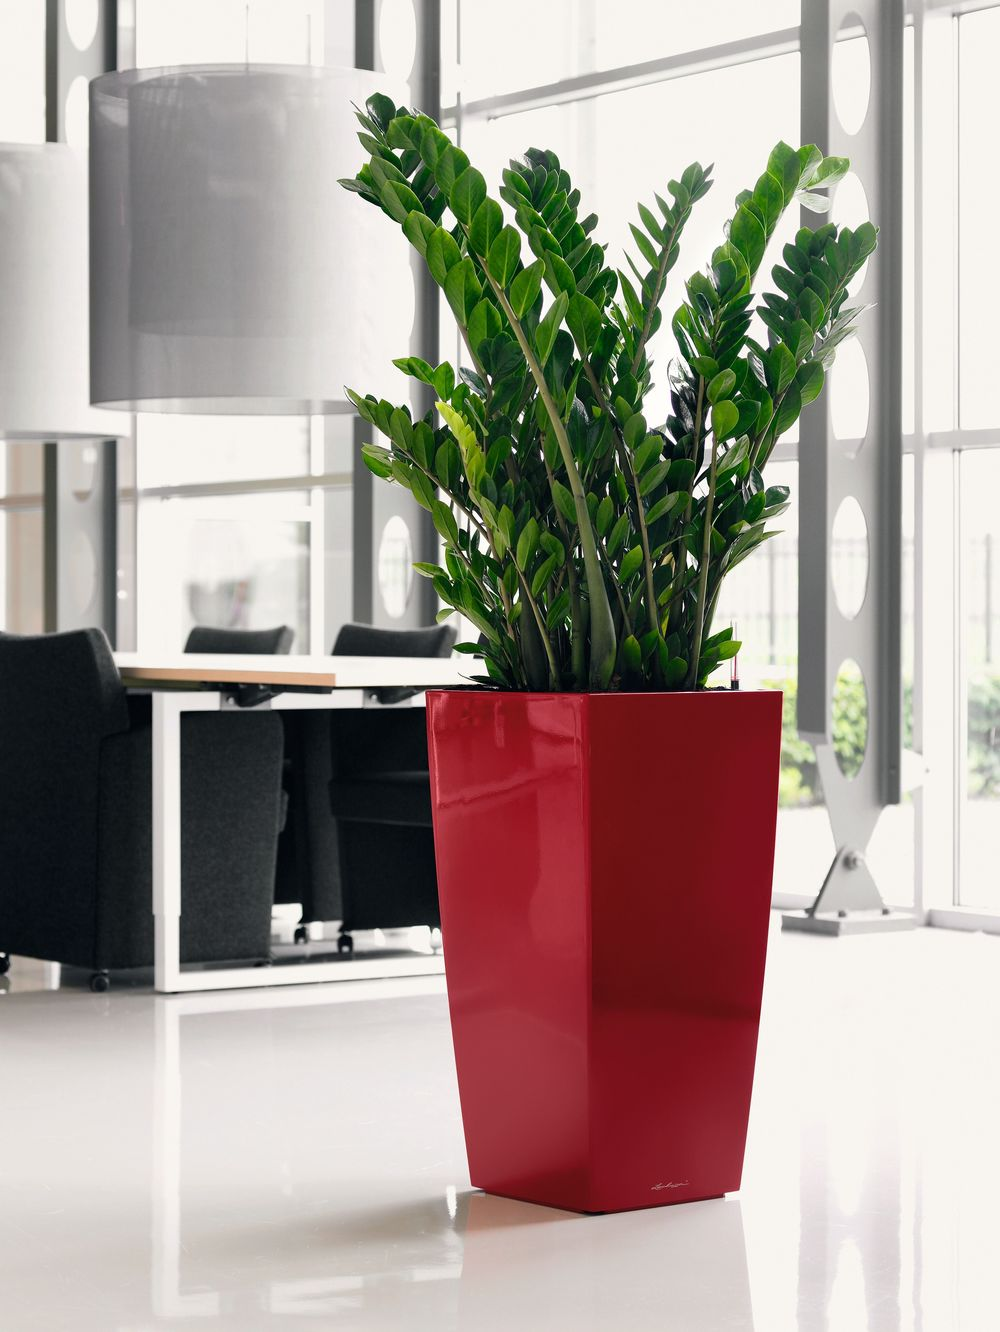 Cubico-50-Red-with-zz-plant.jpg